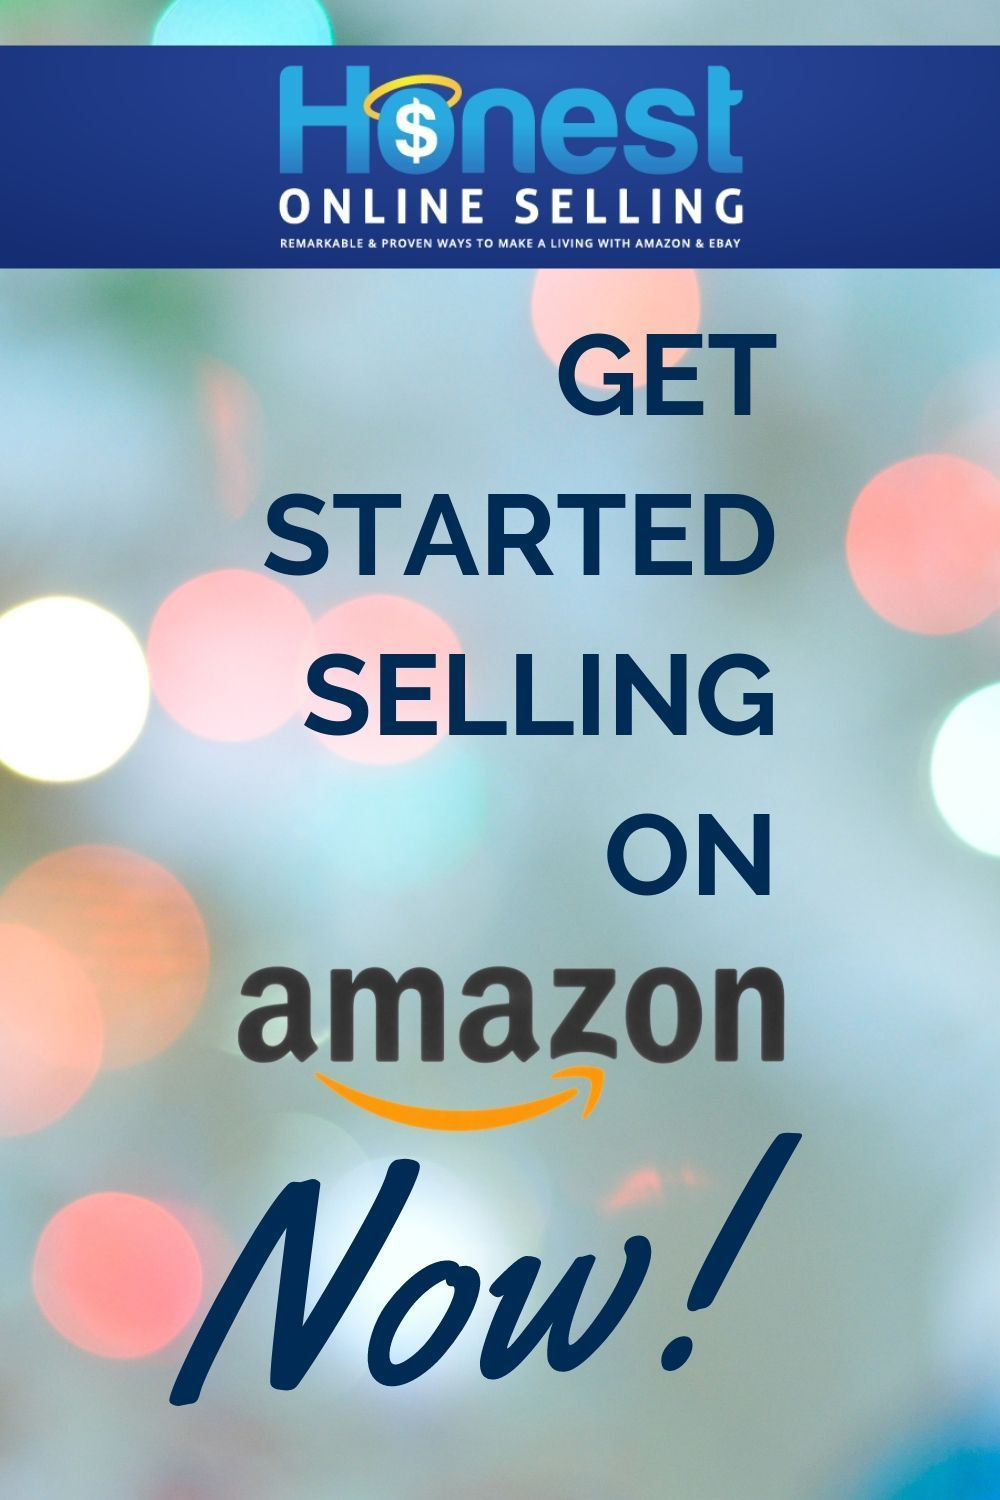 how much money can i make selling on amazon